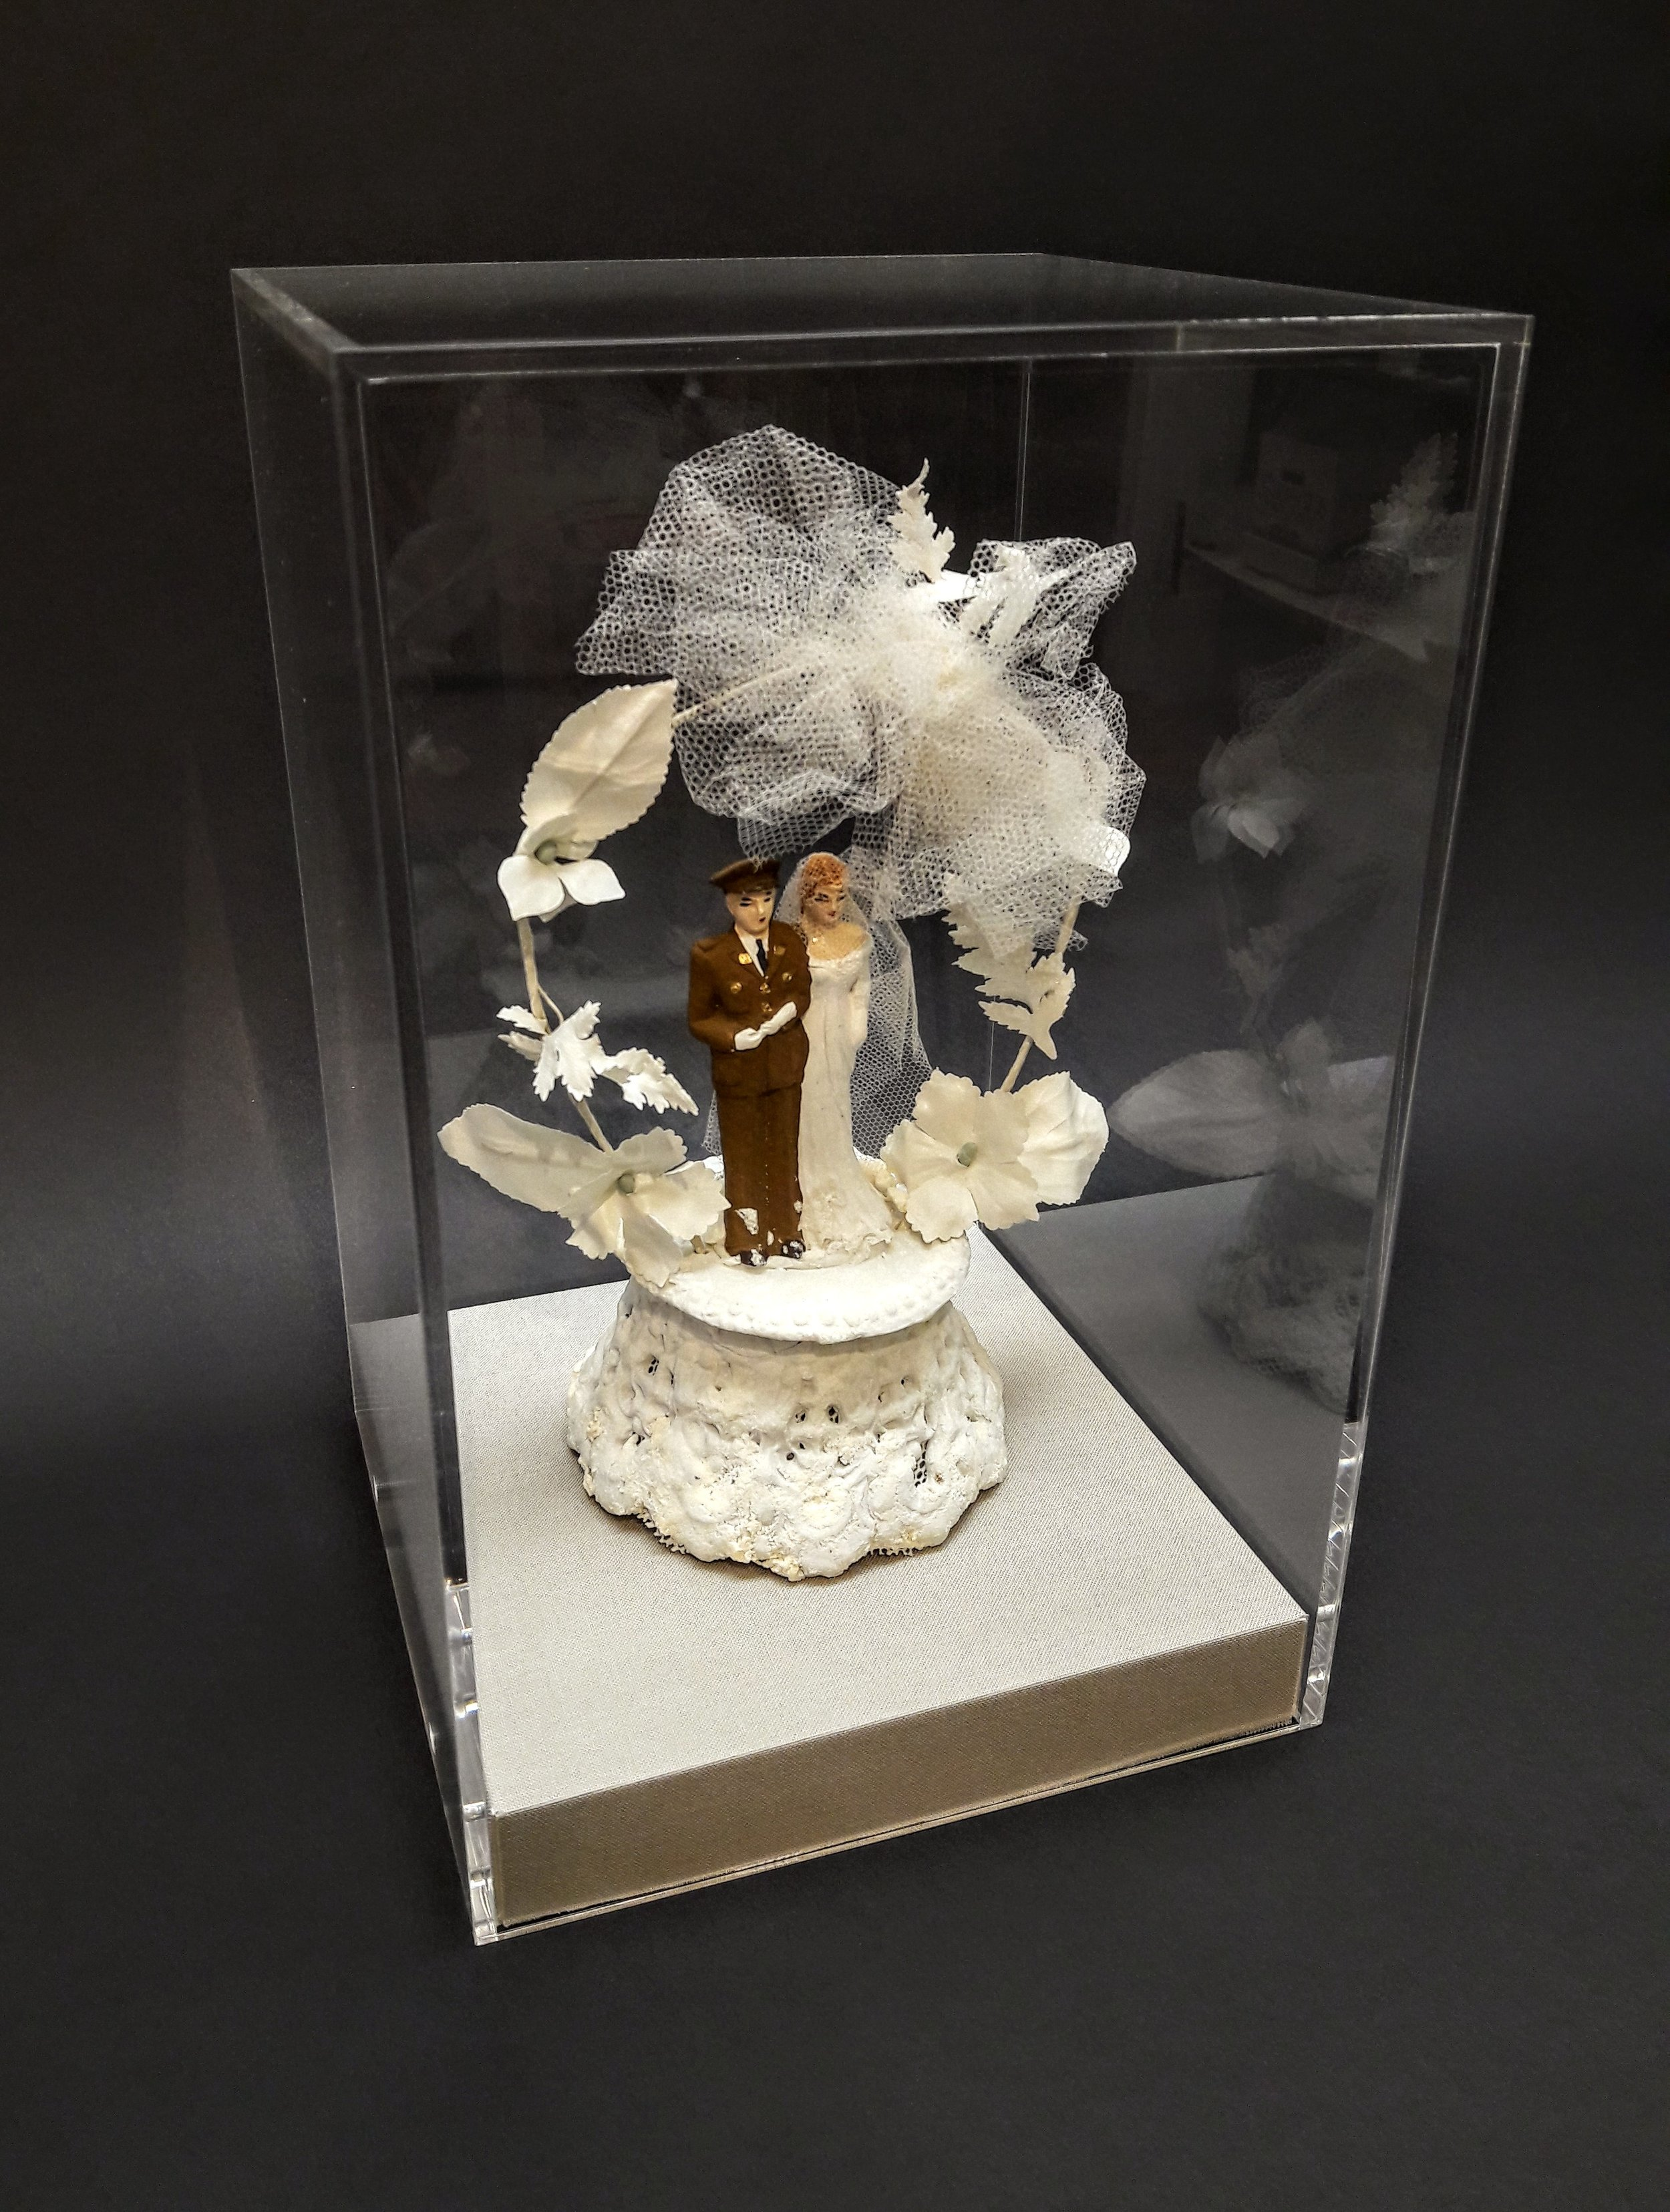 Vintage Cake Topper in Acrylic Box - A clear acrylic display box is a great solution for special objects like this vintage cake topper. We designed a linen platform and hidden mount to give it stability.